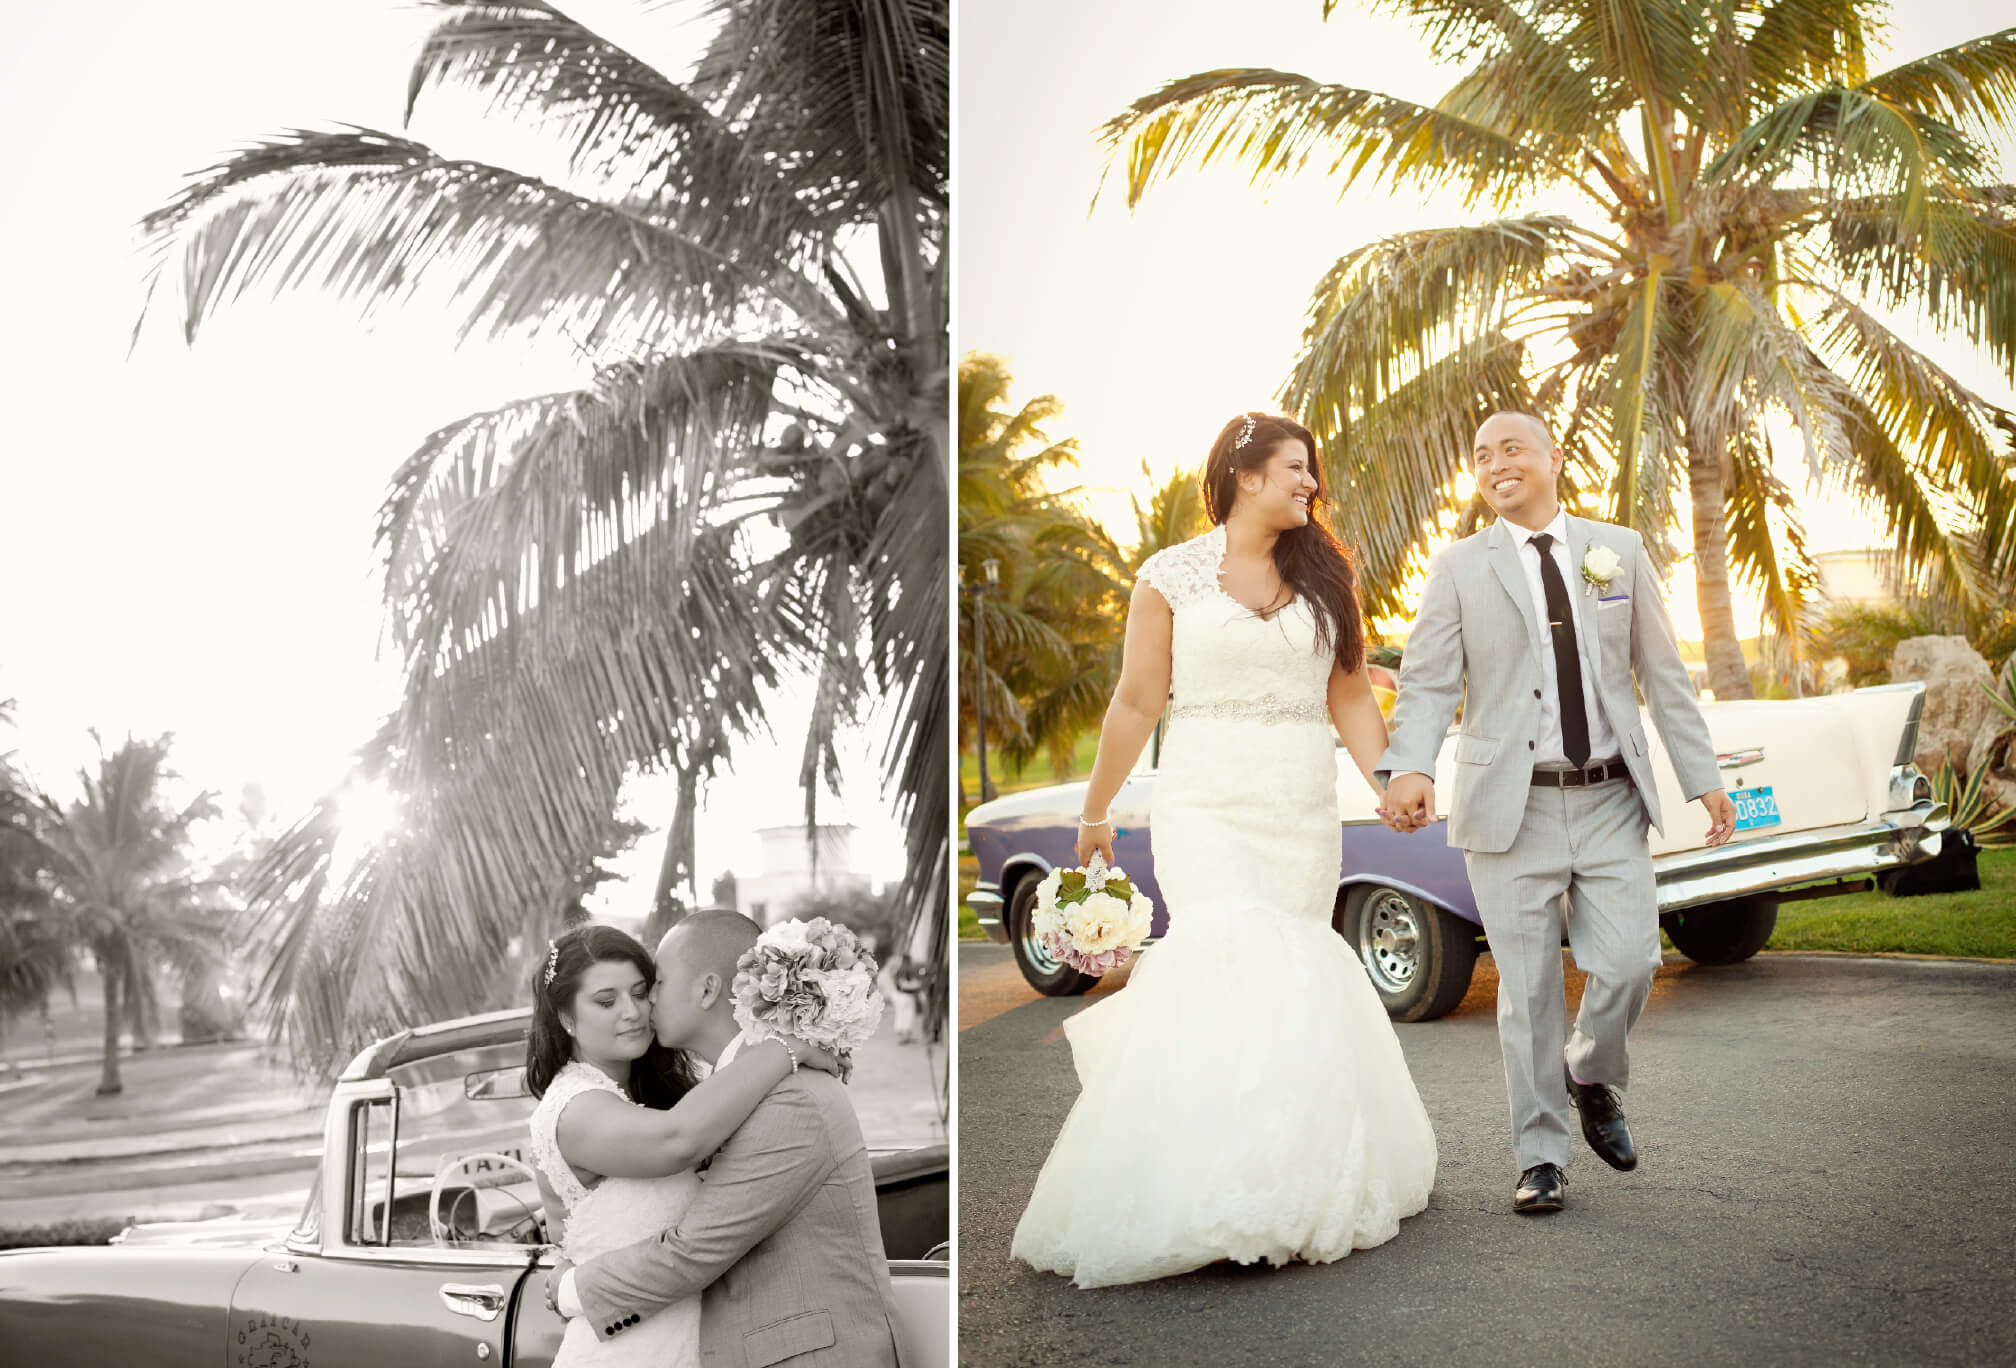 bride and groom vintage taxi palm trees cuba destination wedding